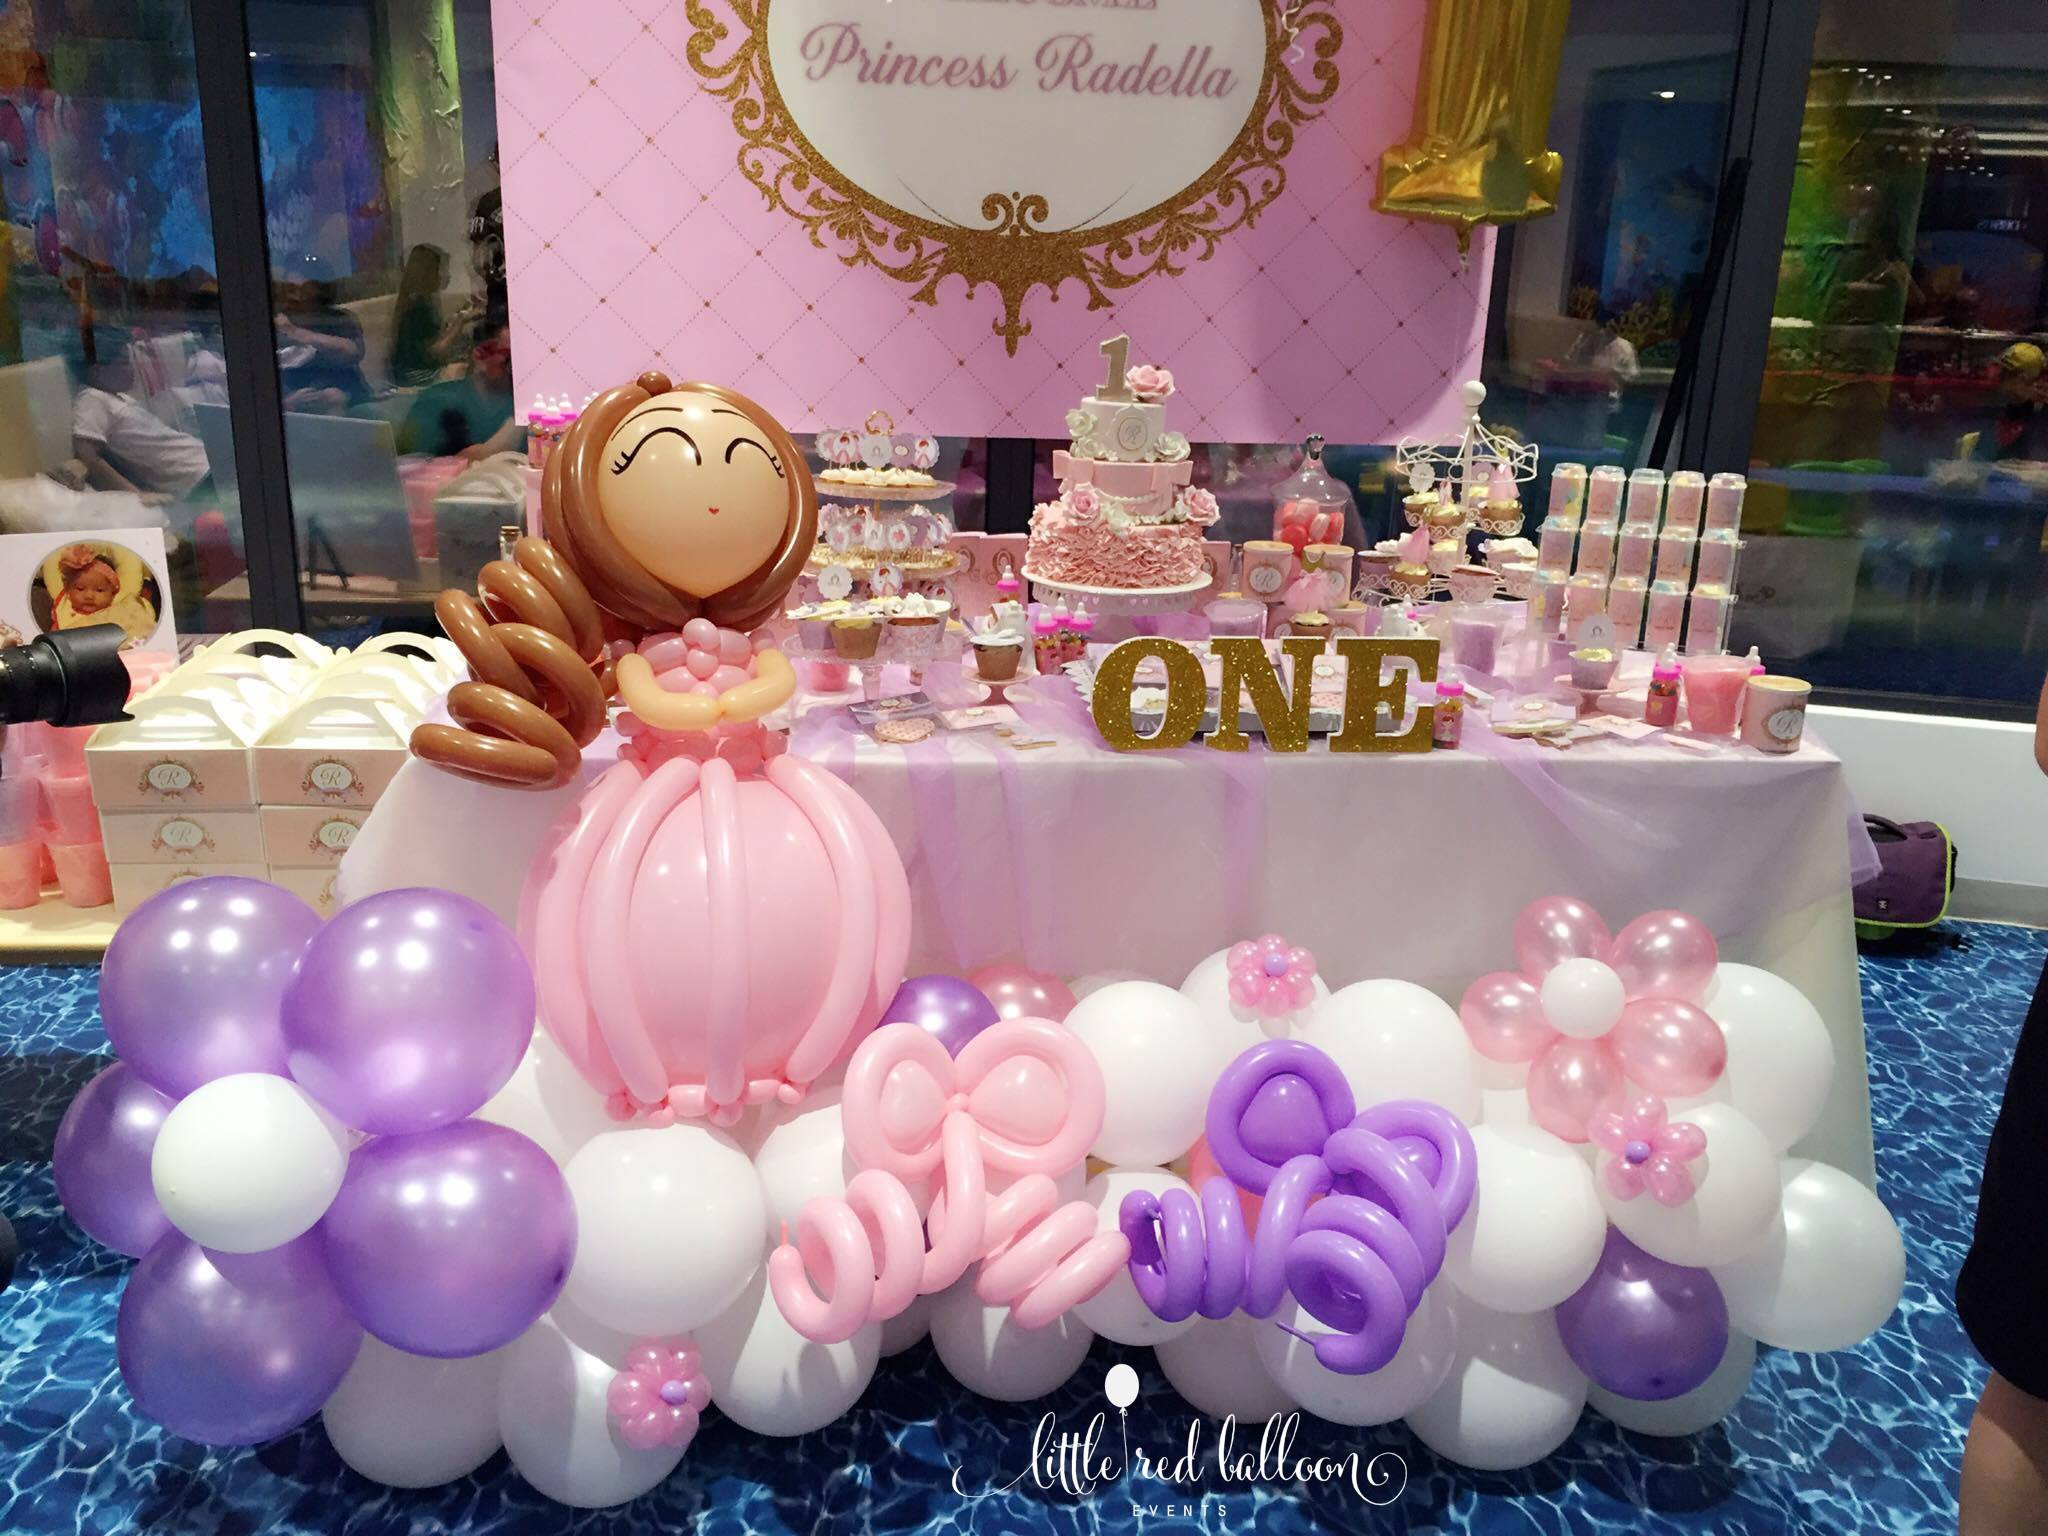 Best ideas about Princess Themed Birthday Party . Save or Pin Little Red Balloon – Princess Party Decorations In Now.